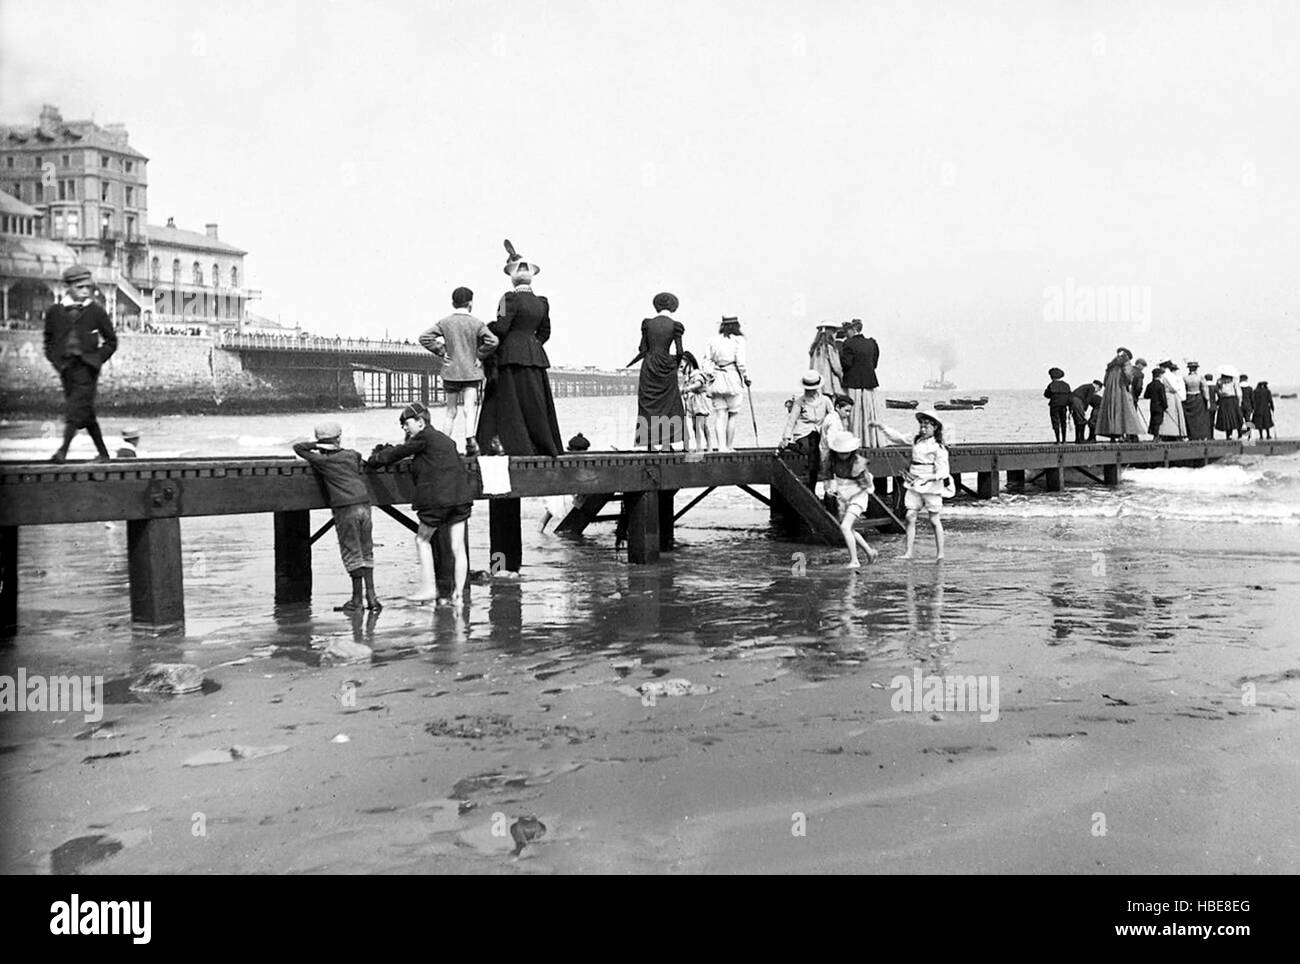 Llandudno beach and pier 1895 - Stock Image